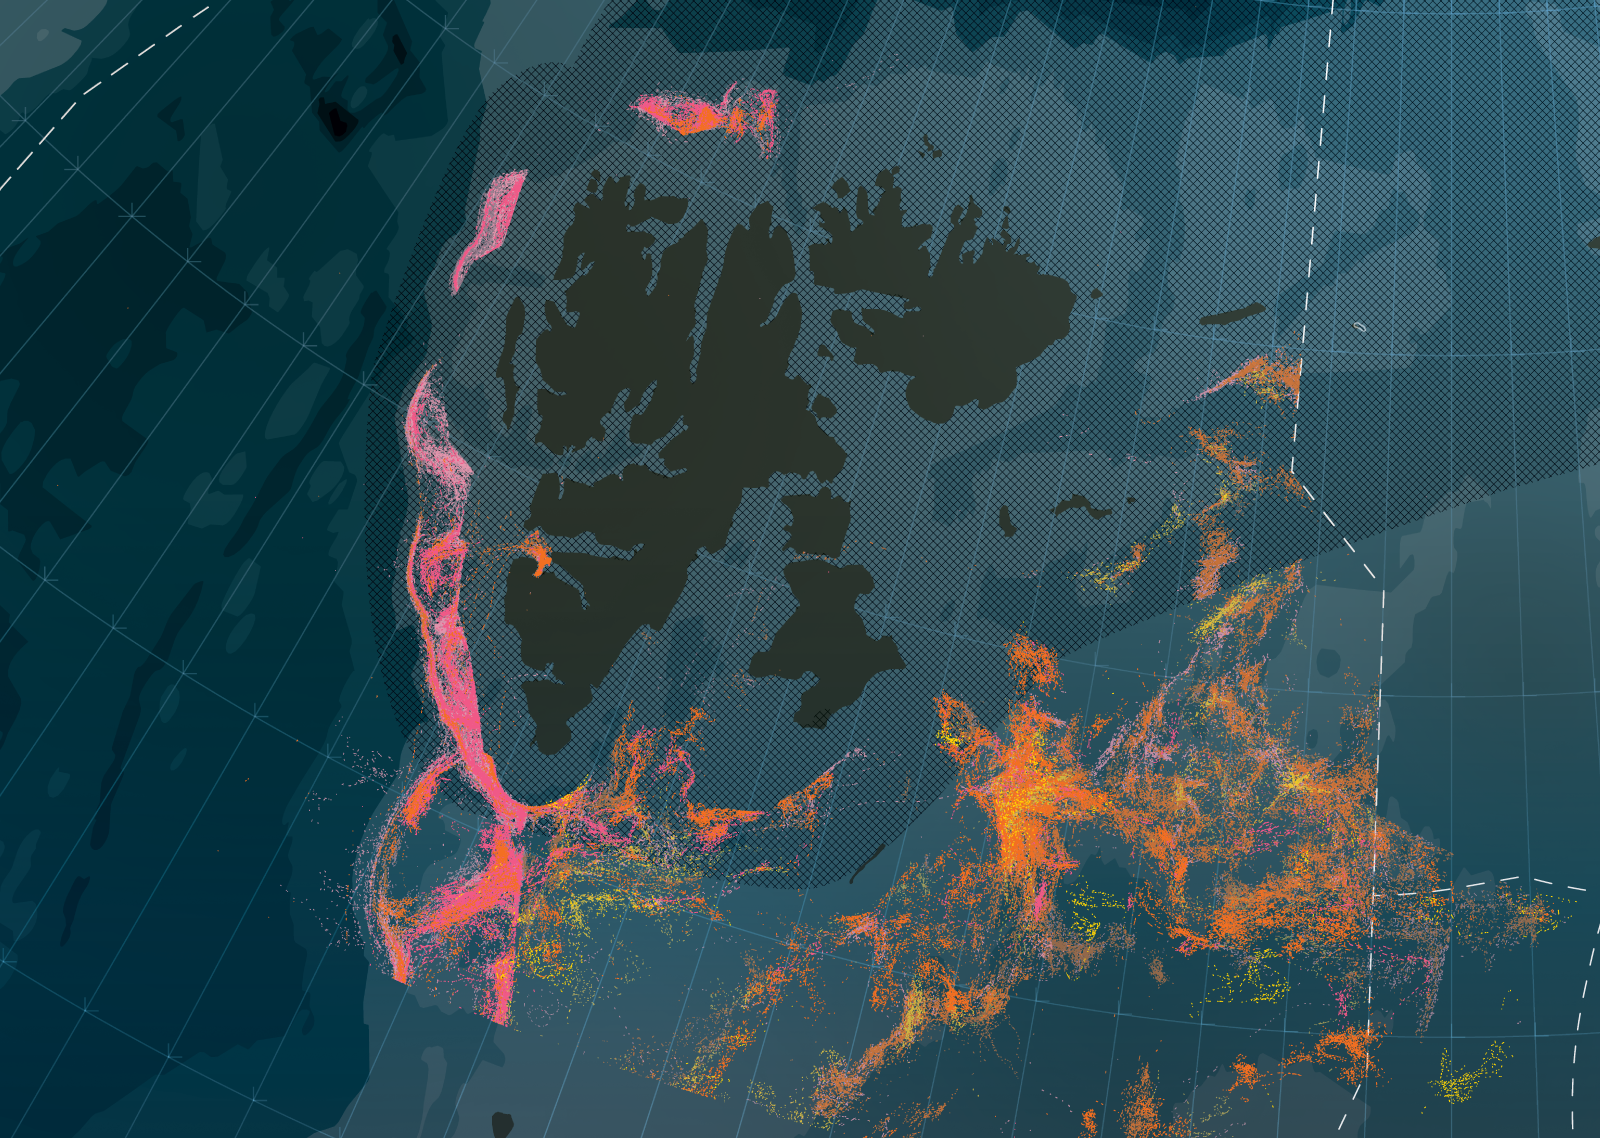 Mapping the movements of three trawler fleets, Haviske, FUIN and Ocean Trawlers around Svalbard in three years to 2015.